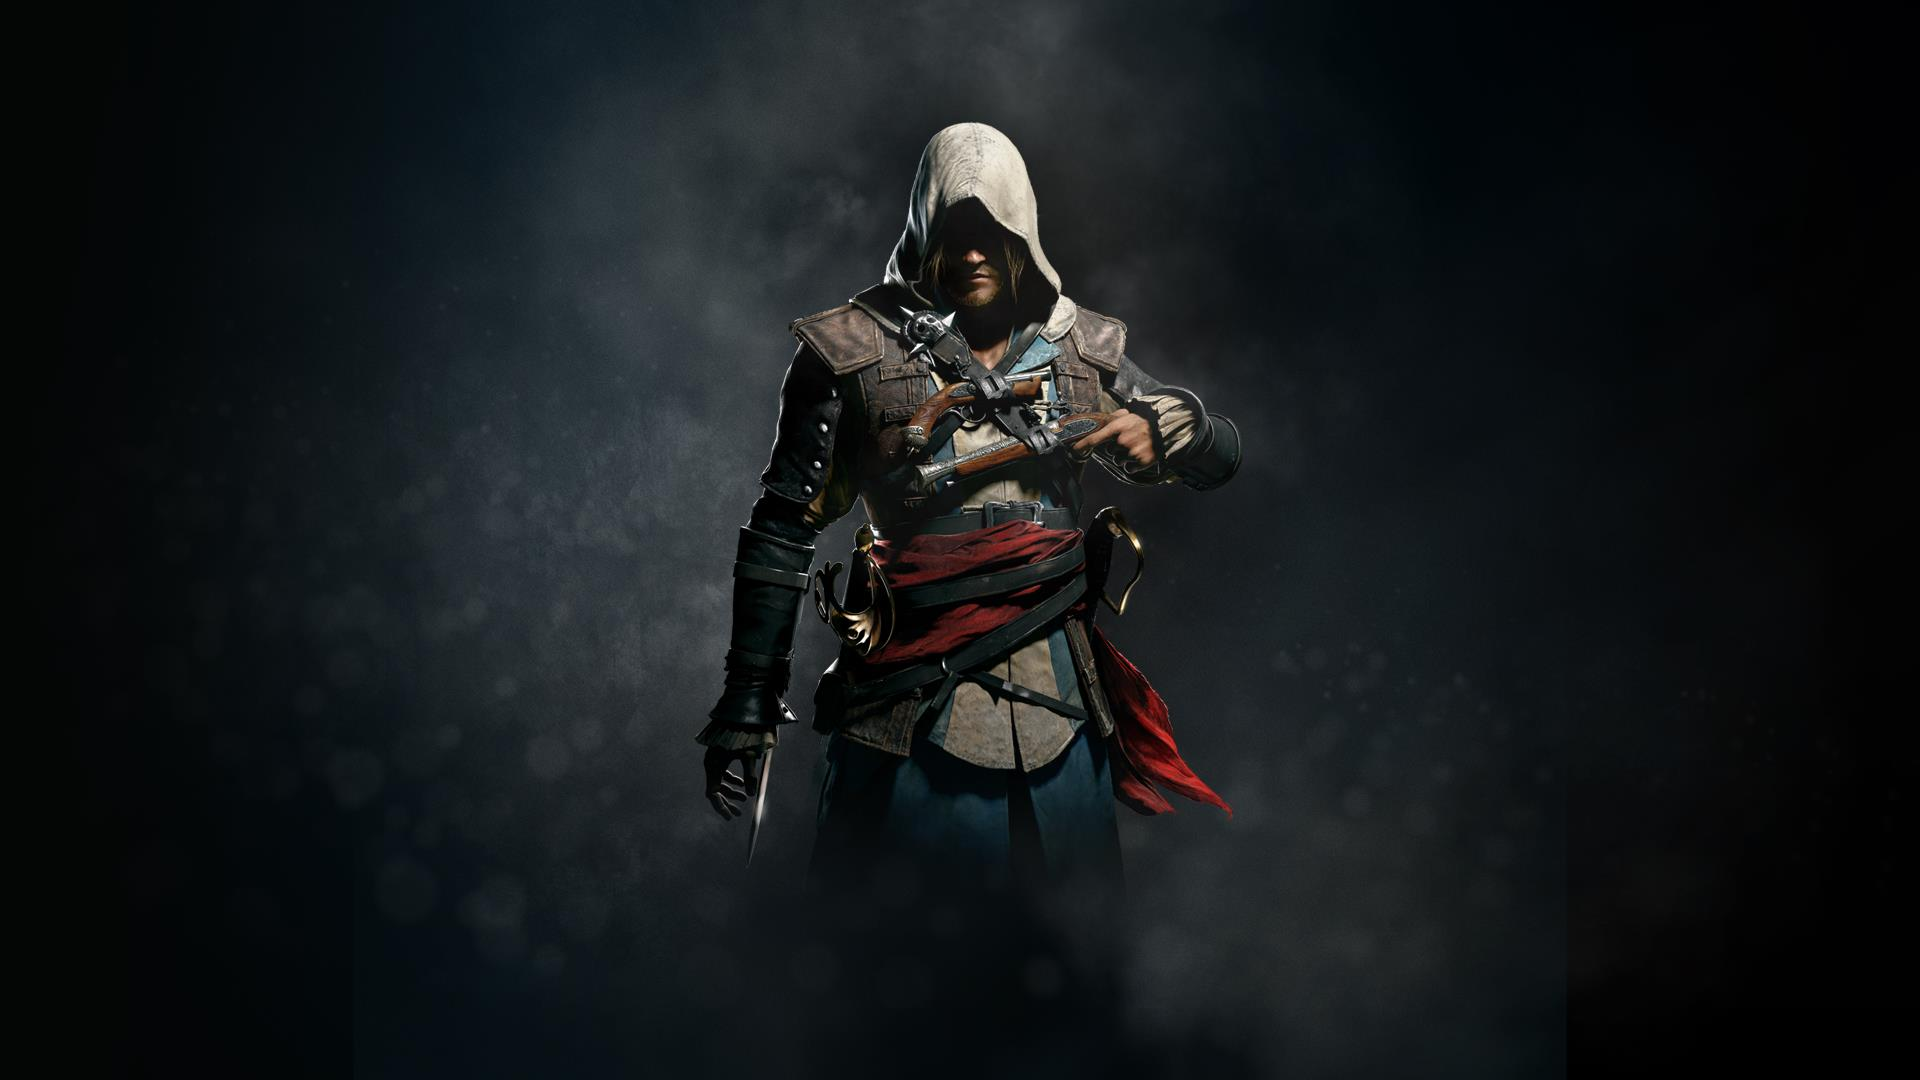 Death Of A Salesman in Assassin's Creed IV: Black Flag